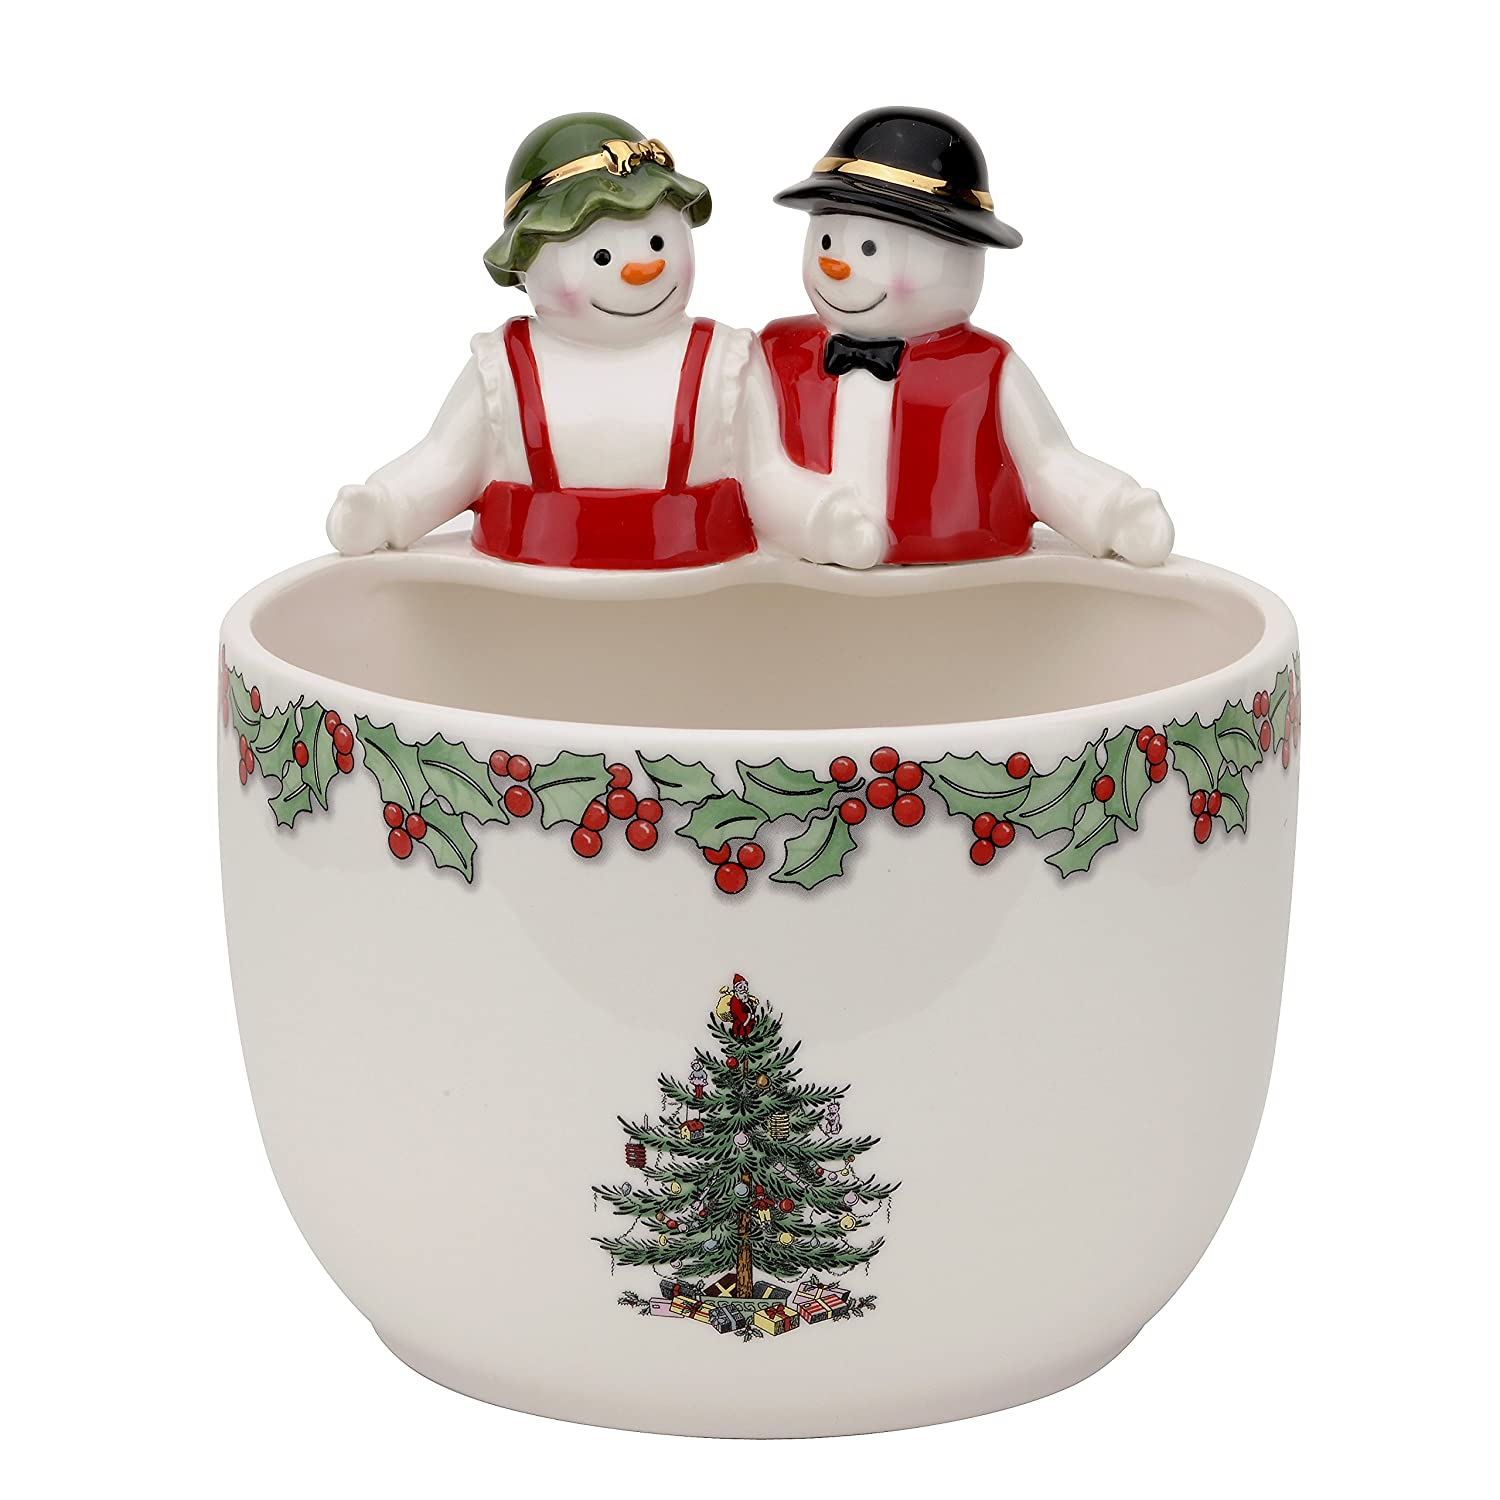 Mr and mrs christmas tree decoration - This Item Introduced In 2015 Hand Decorated The Mr And Mrs Snowman Candy Bowl Is 9 0 Traditional Christmas Tree Design On A